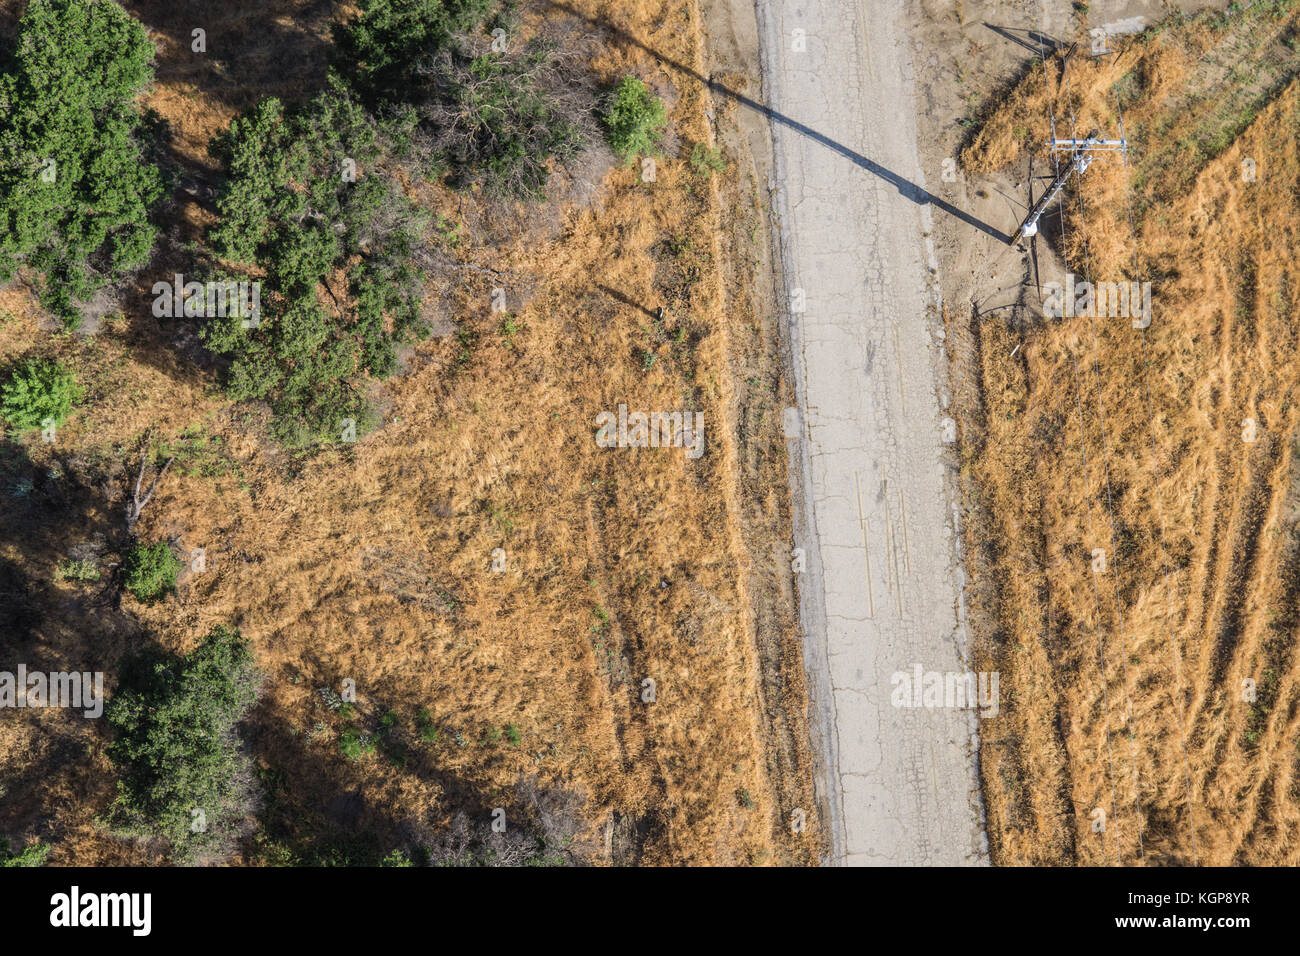 Drone view of empty lonely road in the wilderness of grassland and trees. - Stock Image